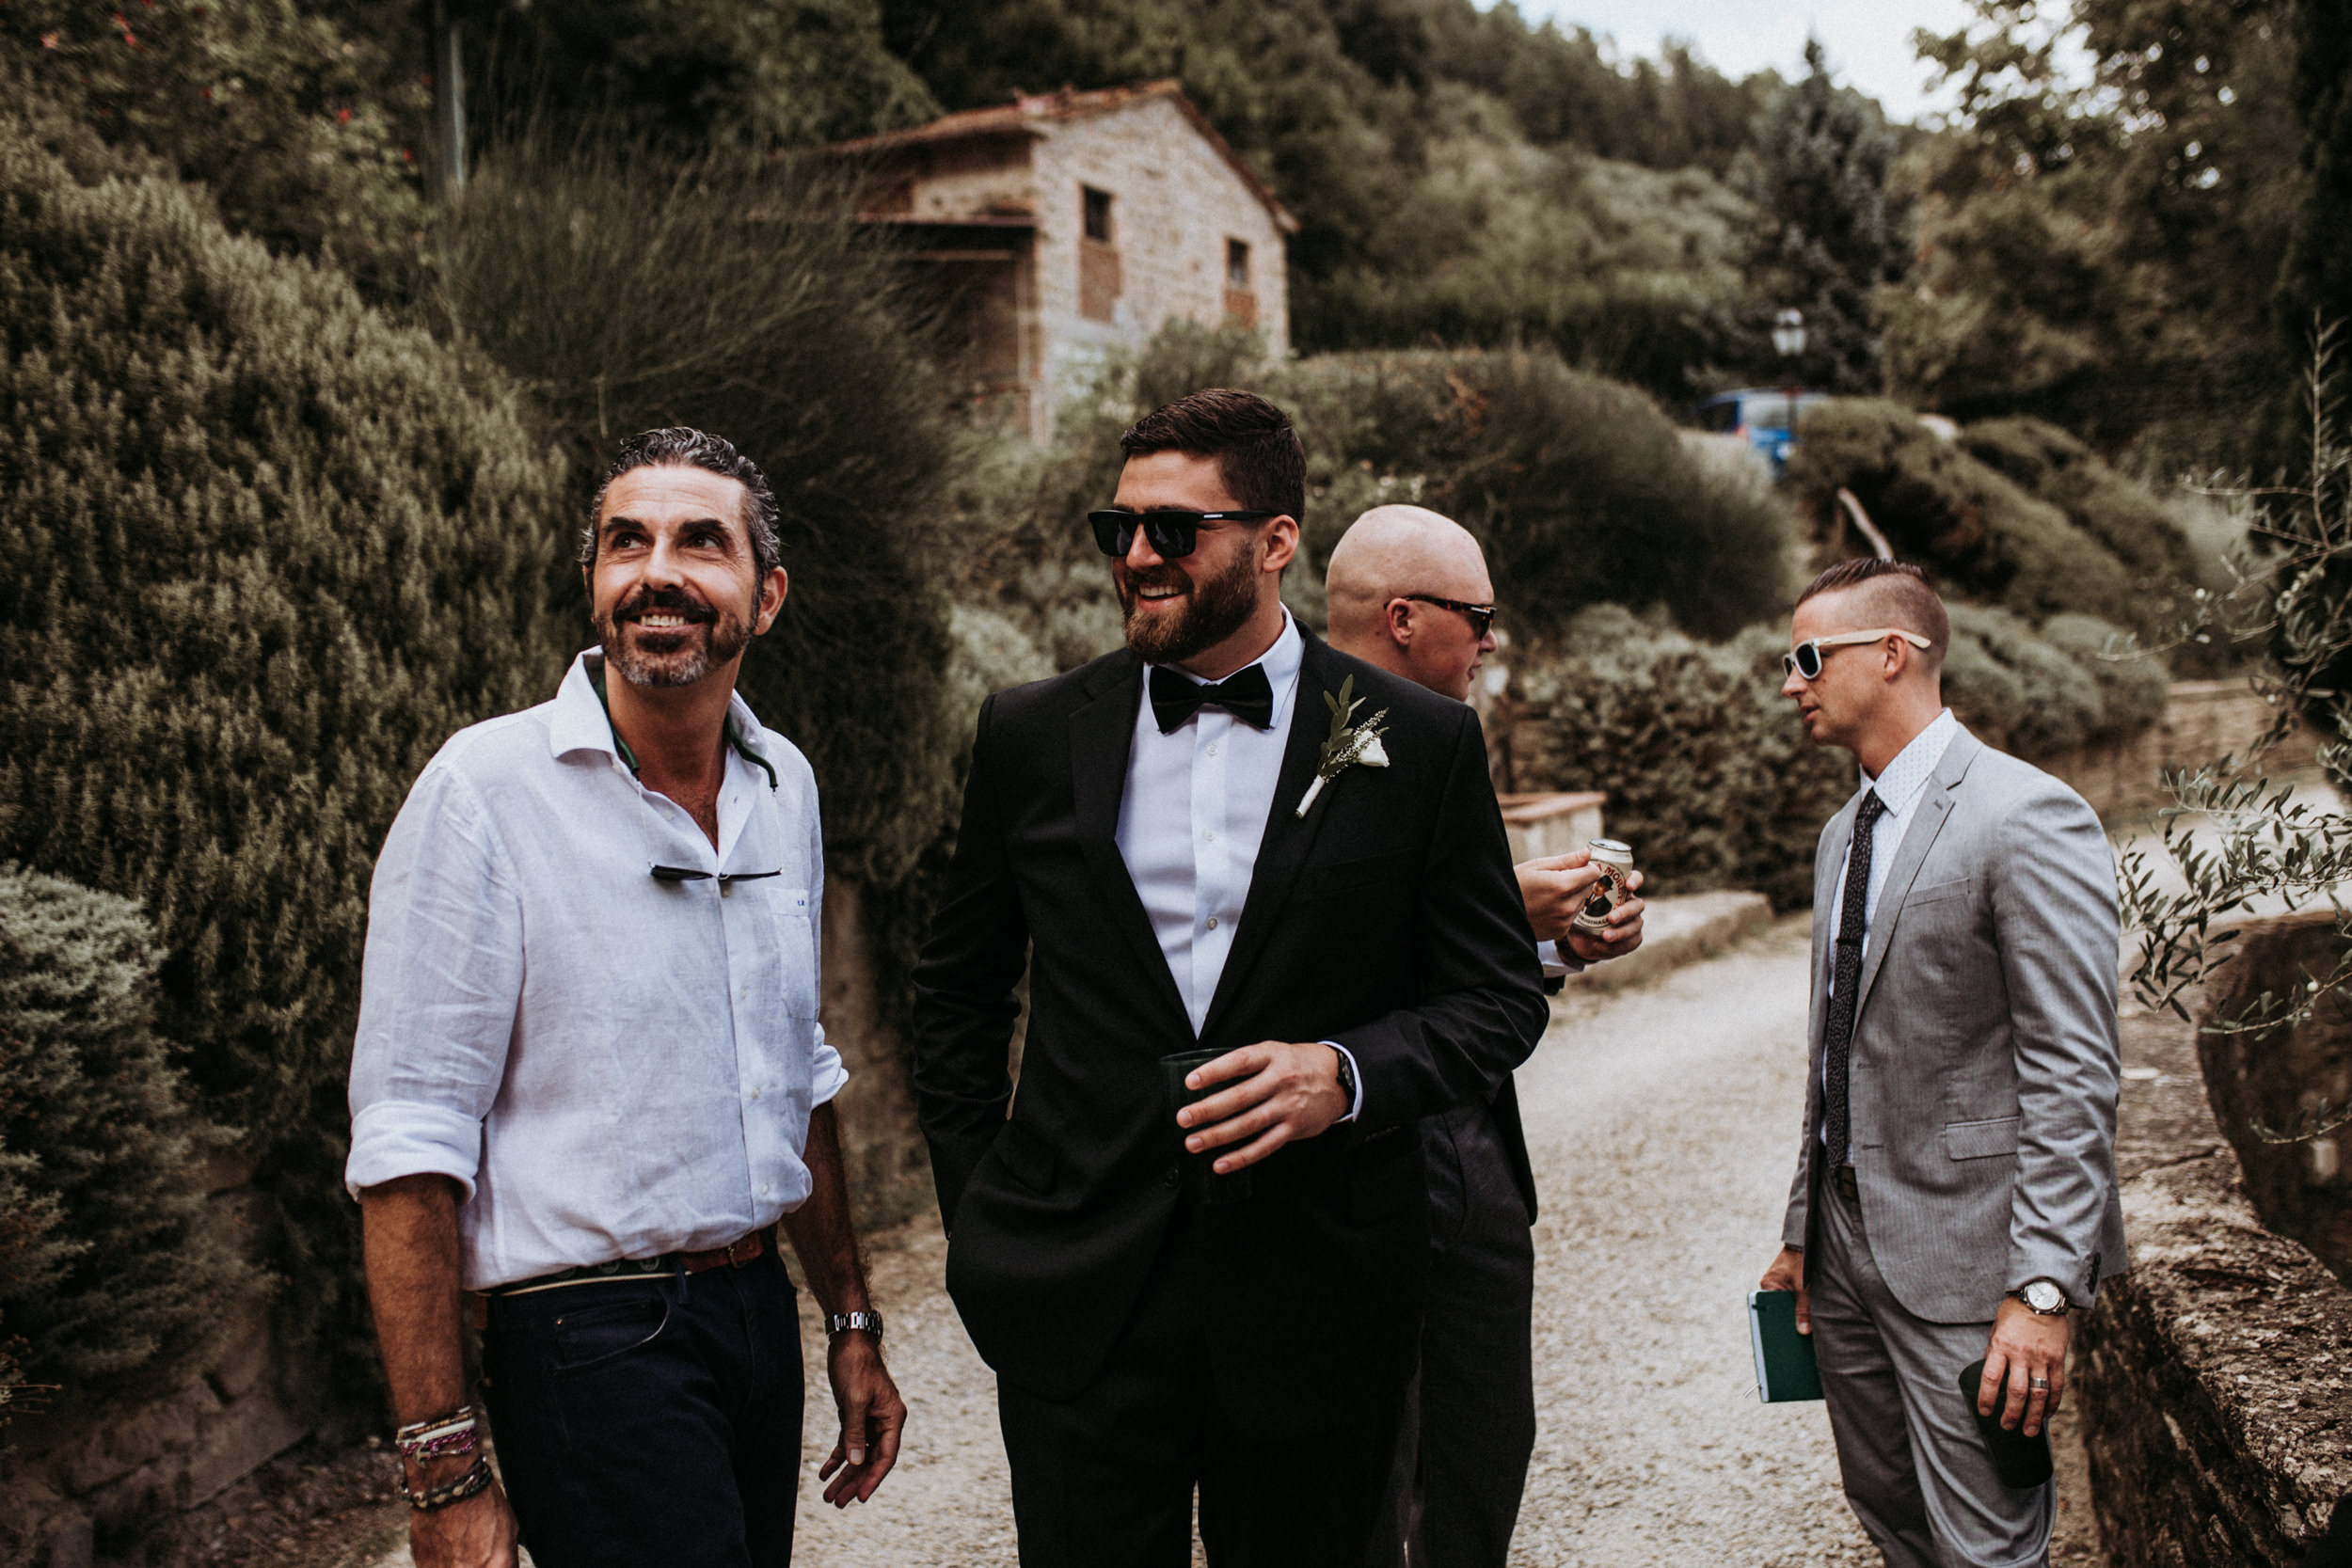 dm_photography_KW_Tuscanyweddingday_182